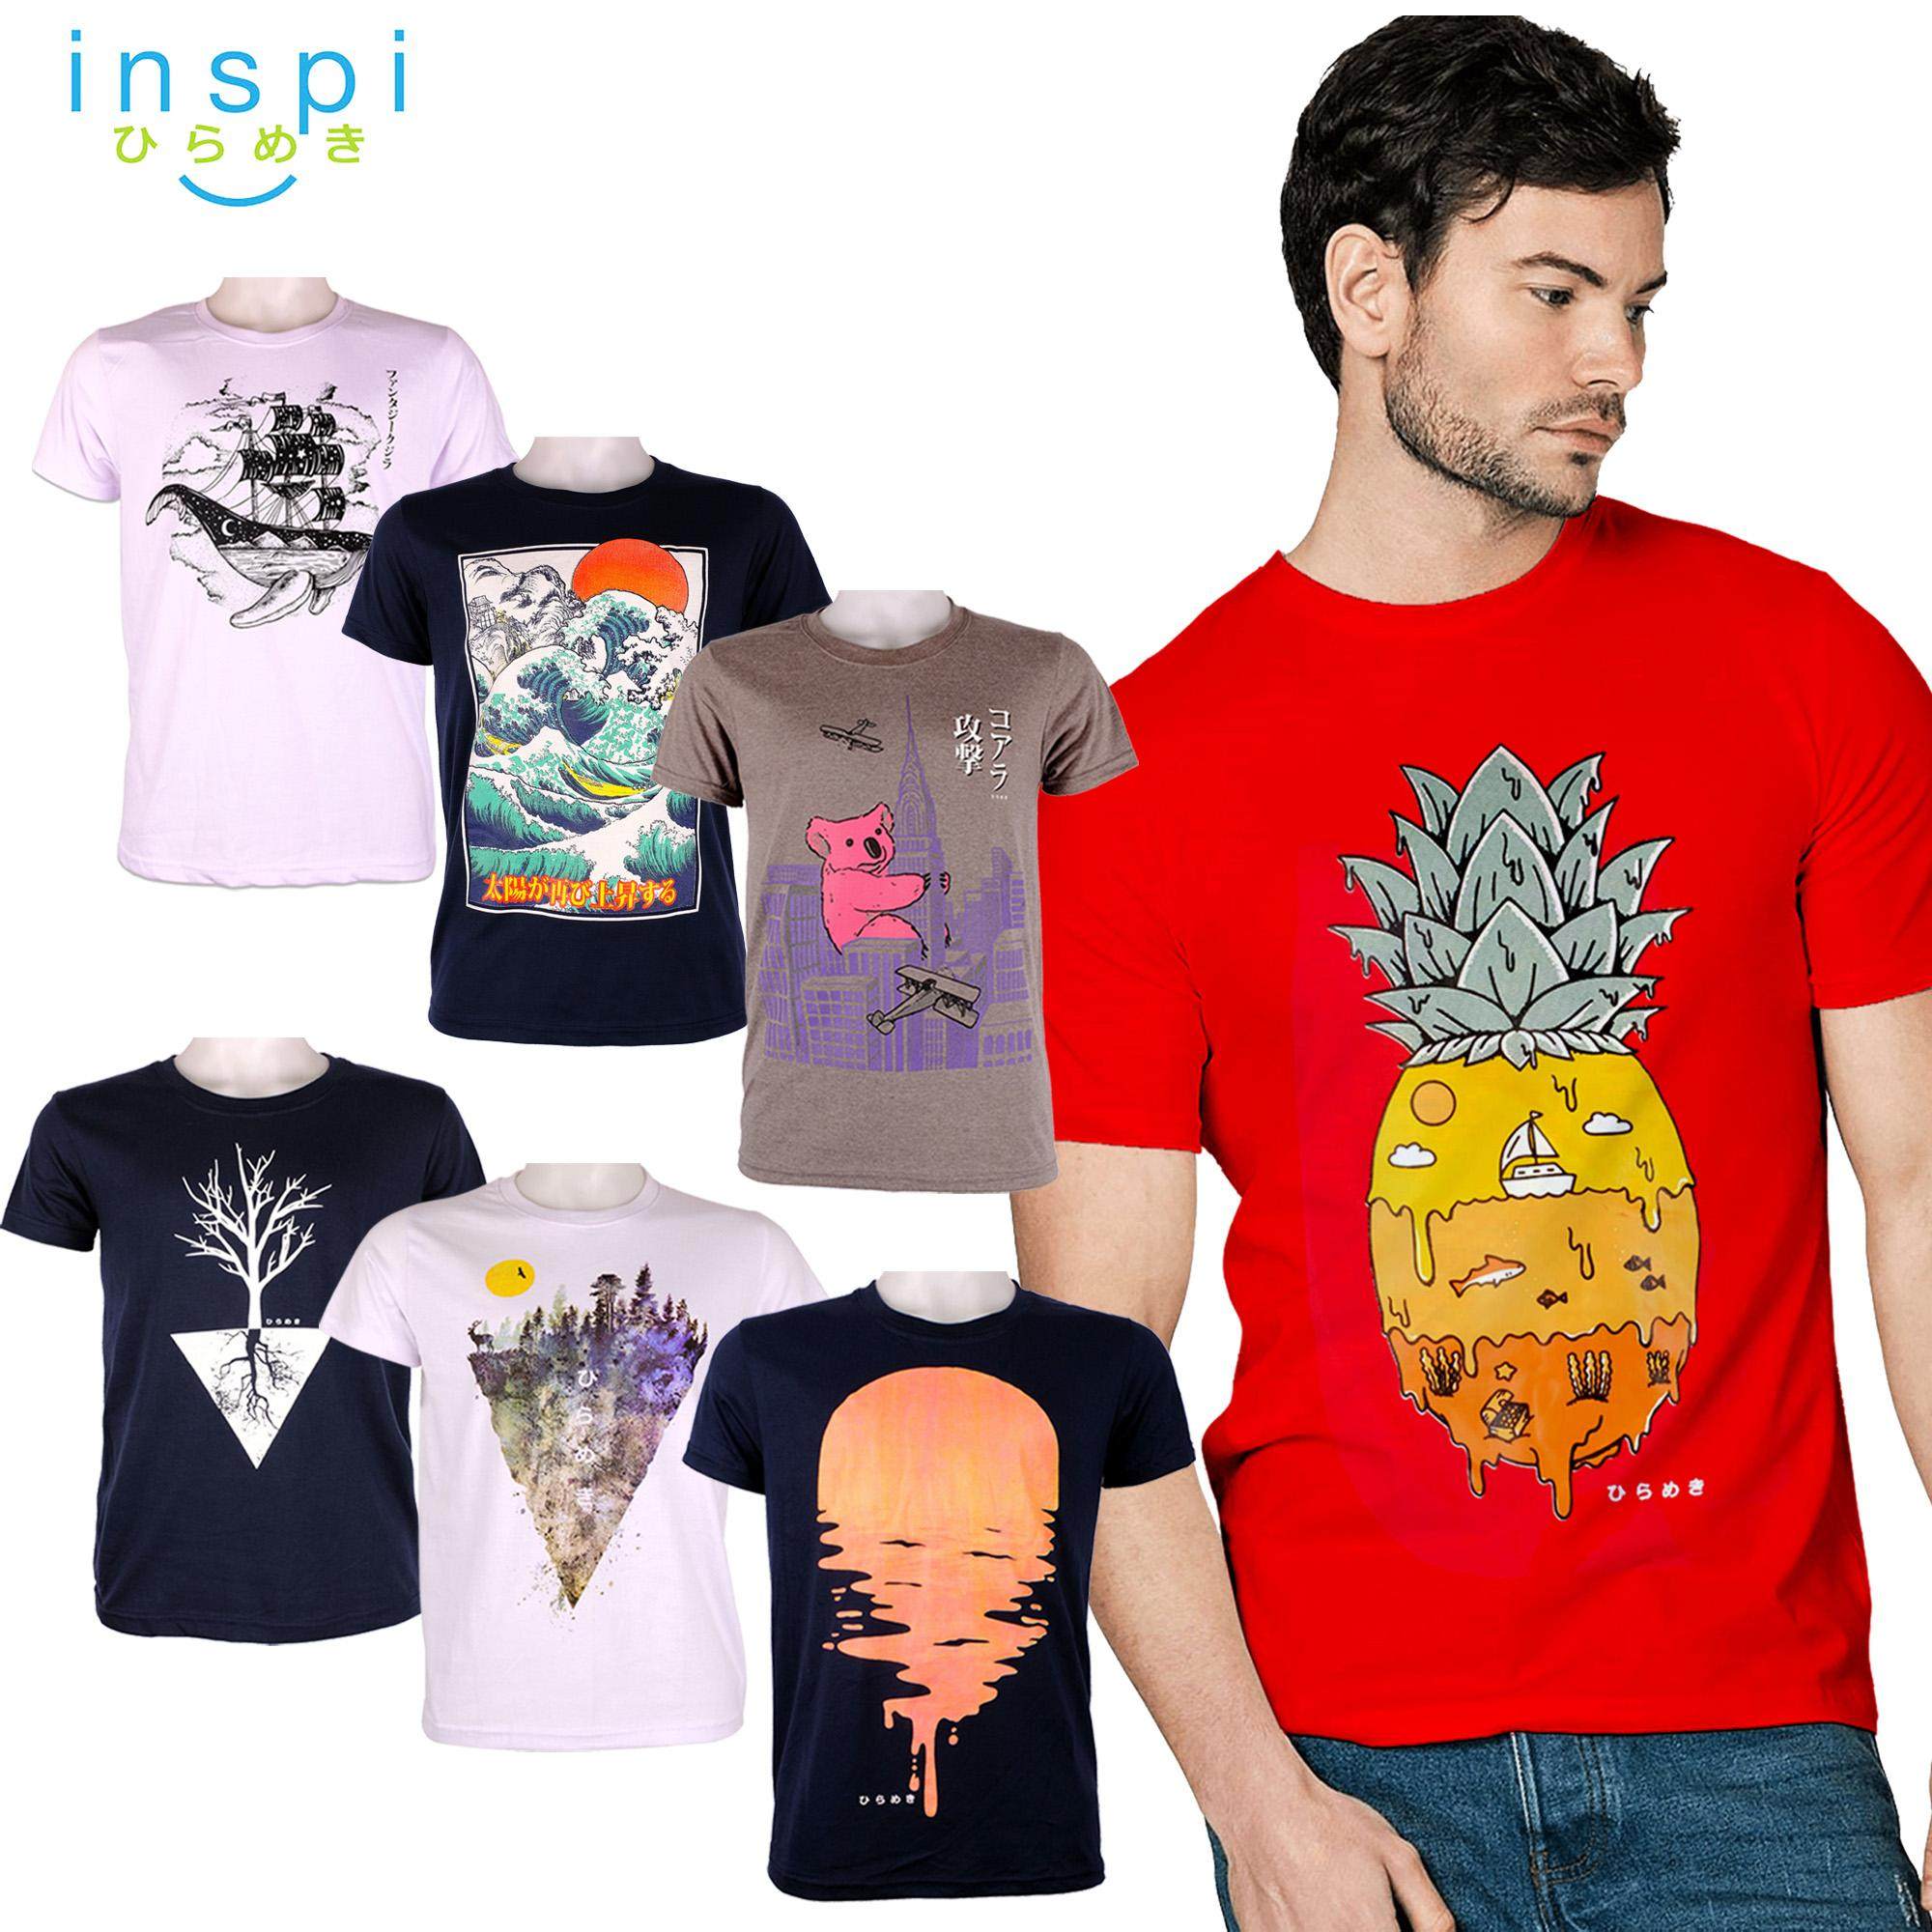 73722543a INSPI Tees Nature Collection tshirt printed graphic tee Mens t shirt shirts  for men tshirts sale